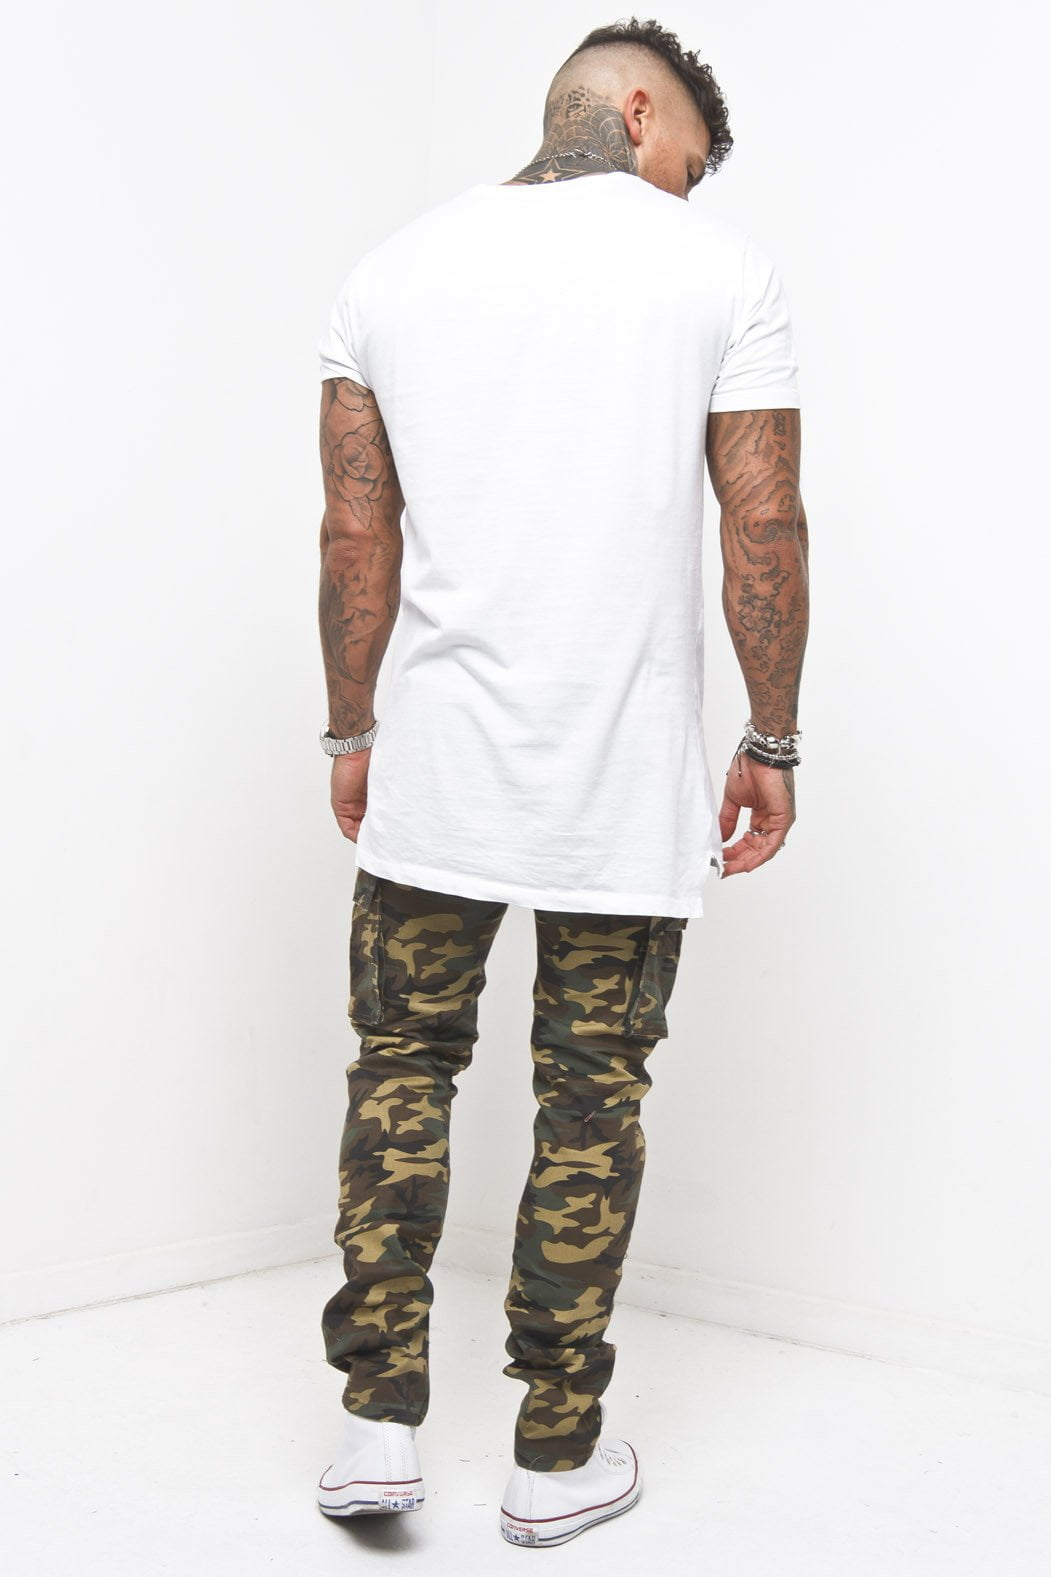 Faro Slim Brown Camo Cargo Trousers - Liquor N Poker  Liquor N Poker